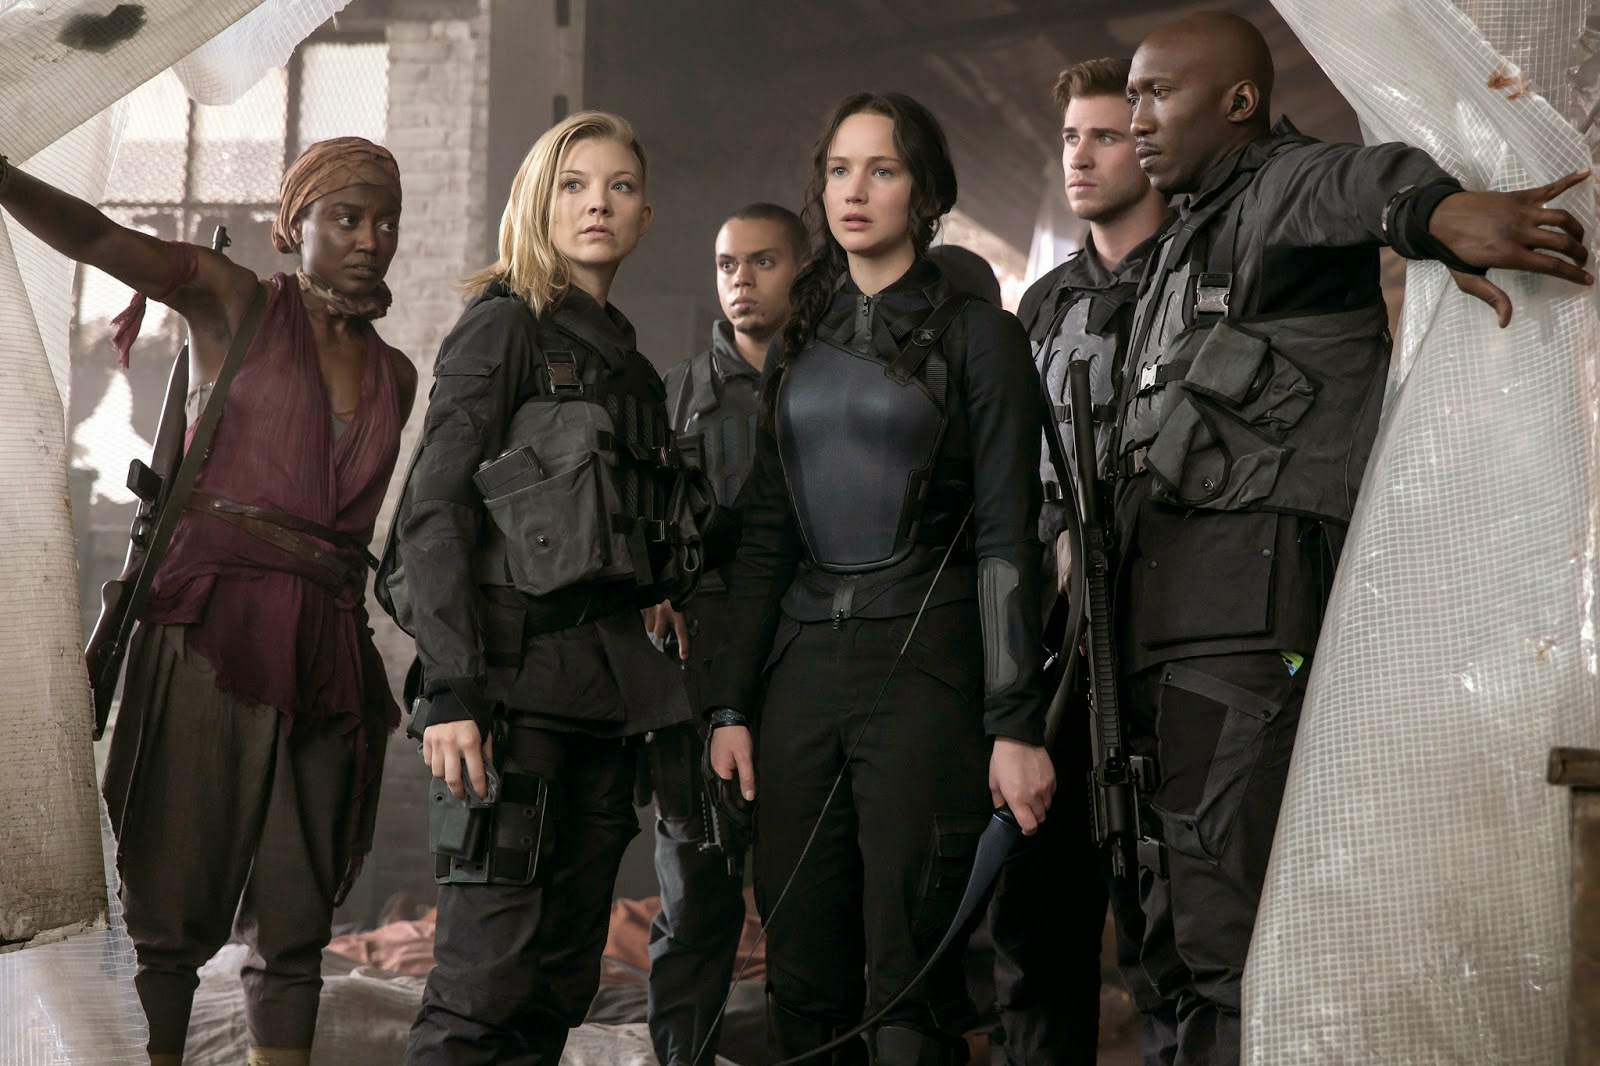 Katniss visits District 8 hospital in Mockingjay Part 1